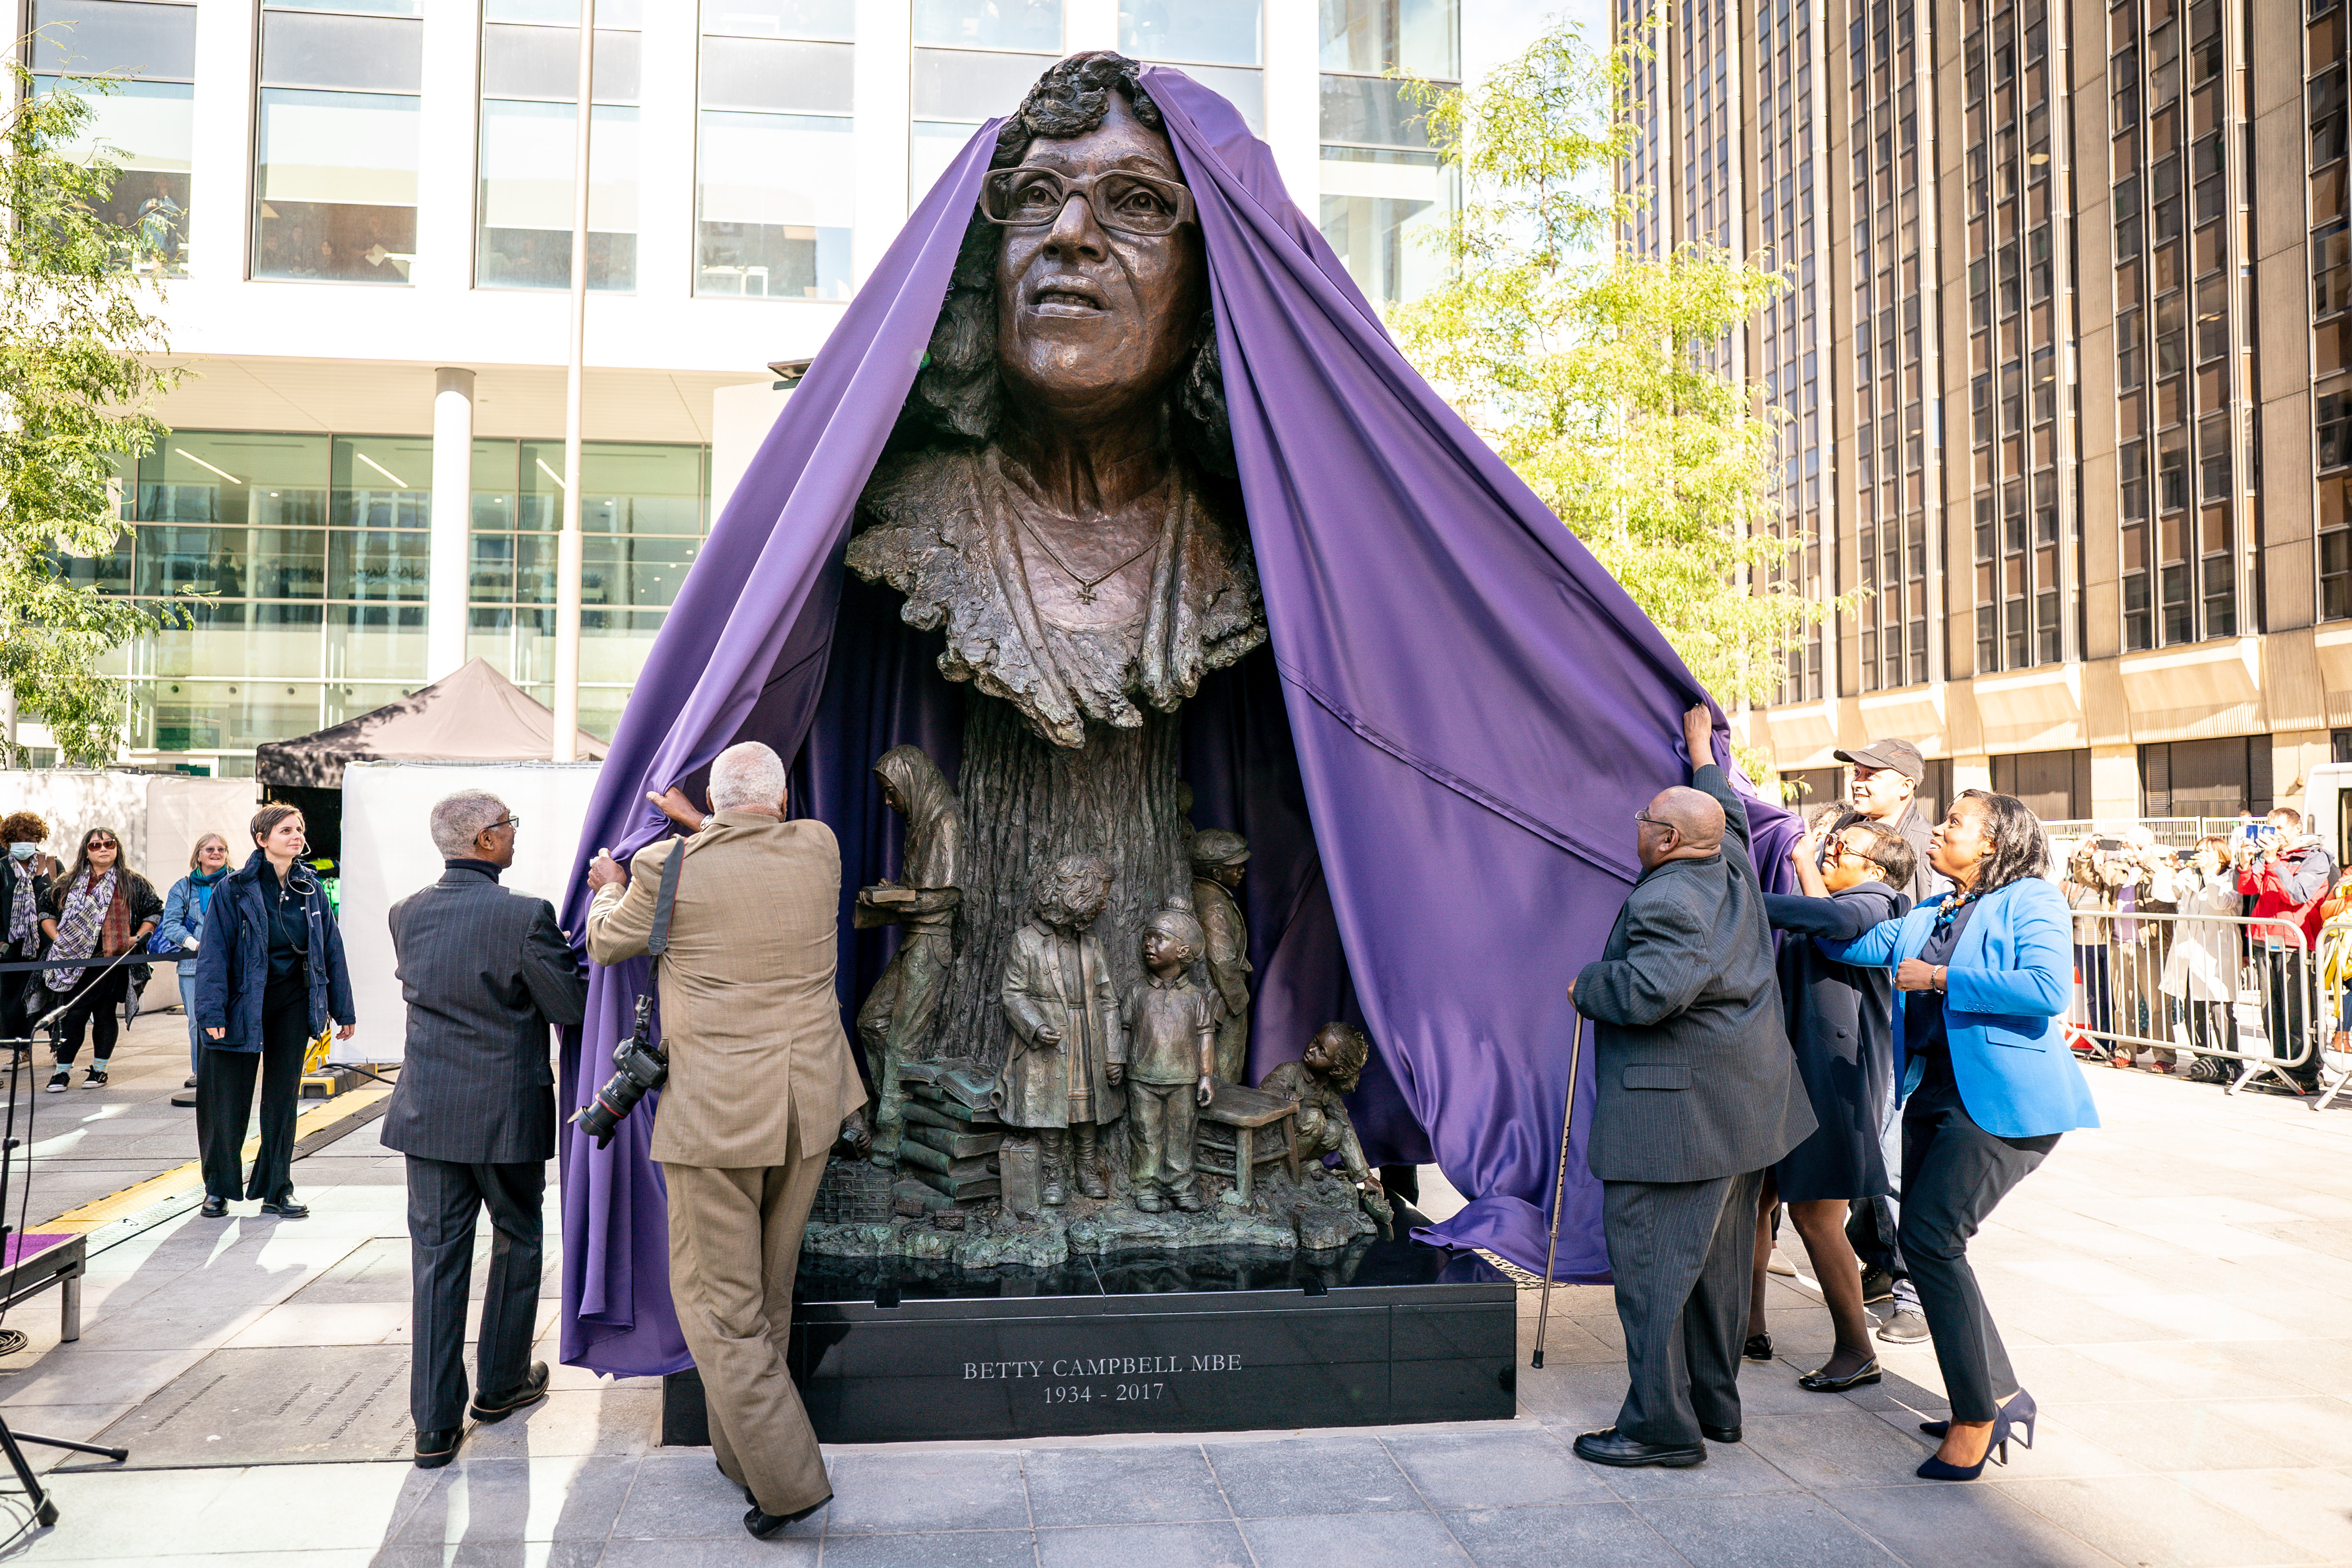 <p>The family of Betty Campbell unveil the bronze sculpture of her during the unveiling of the statue in Central Square, Cardiff, of Betty Campbell, Wales' first black headteacher. Picture date: Wednesday September 29, 2021.</p>